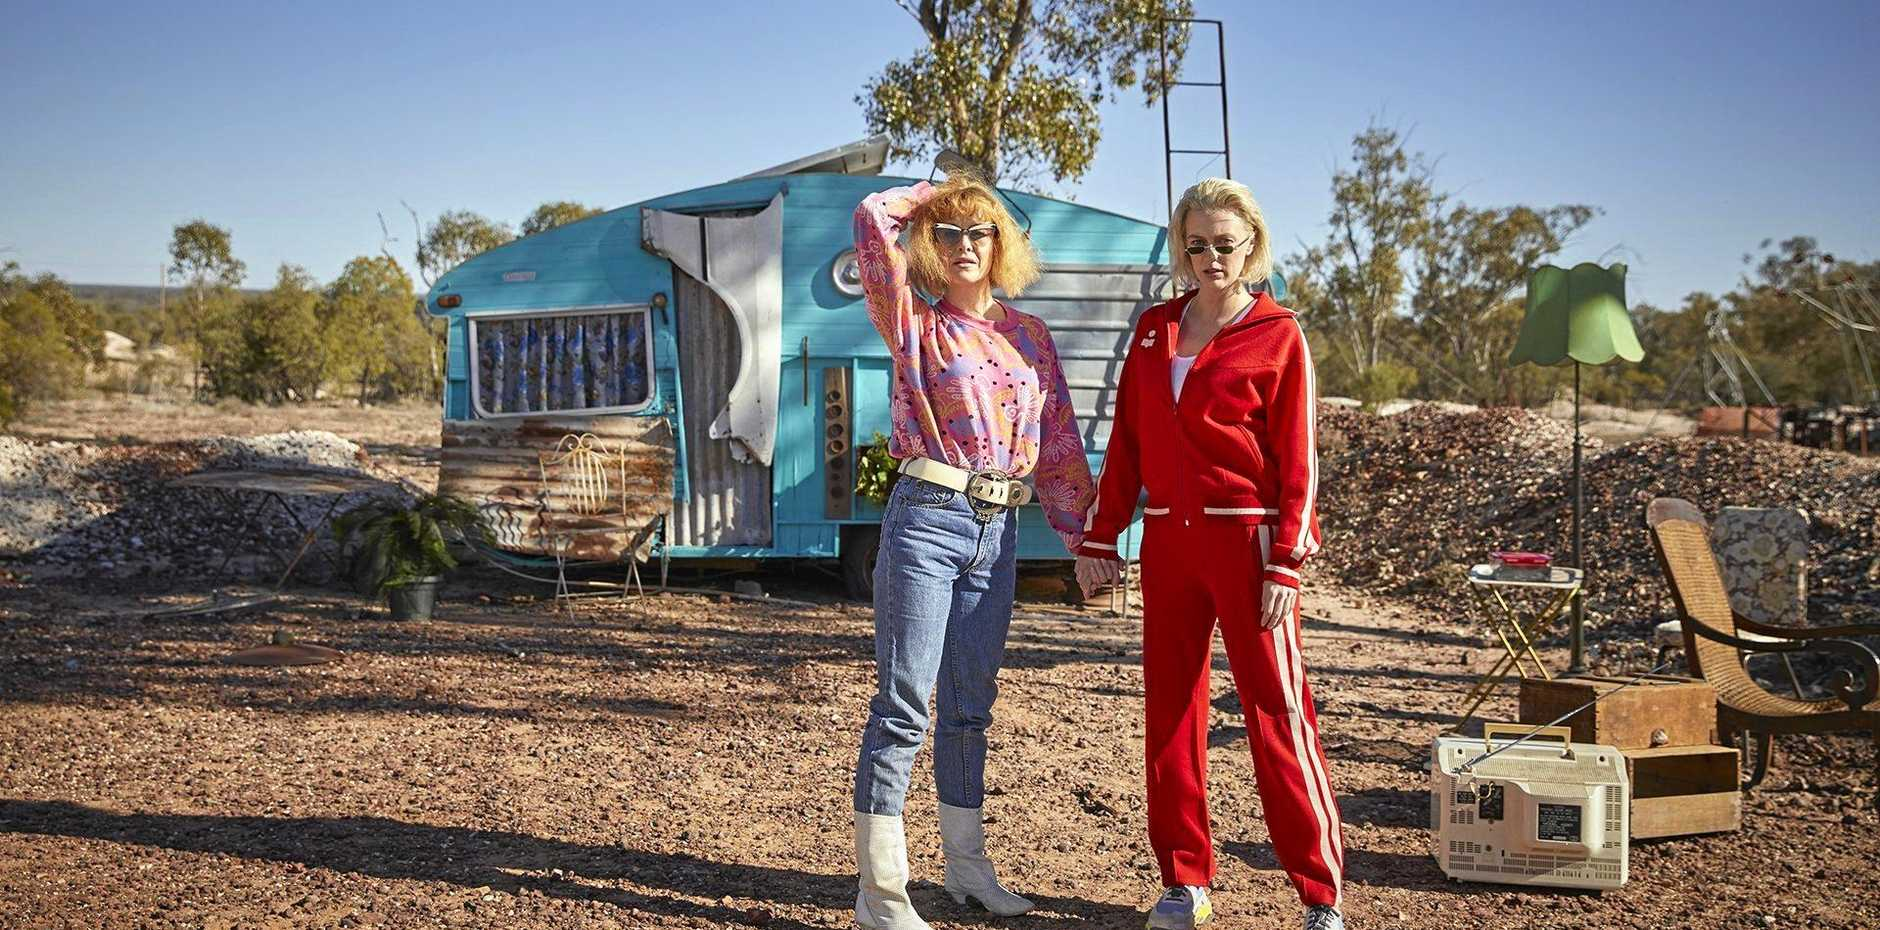 SHORT FILMS: Desert Dash, an Australian film by Gracie Otto, is one of the films selected for Flickerfest 2019.